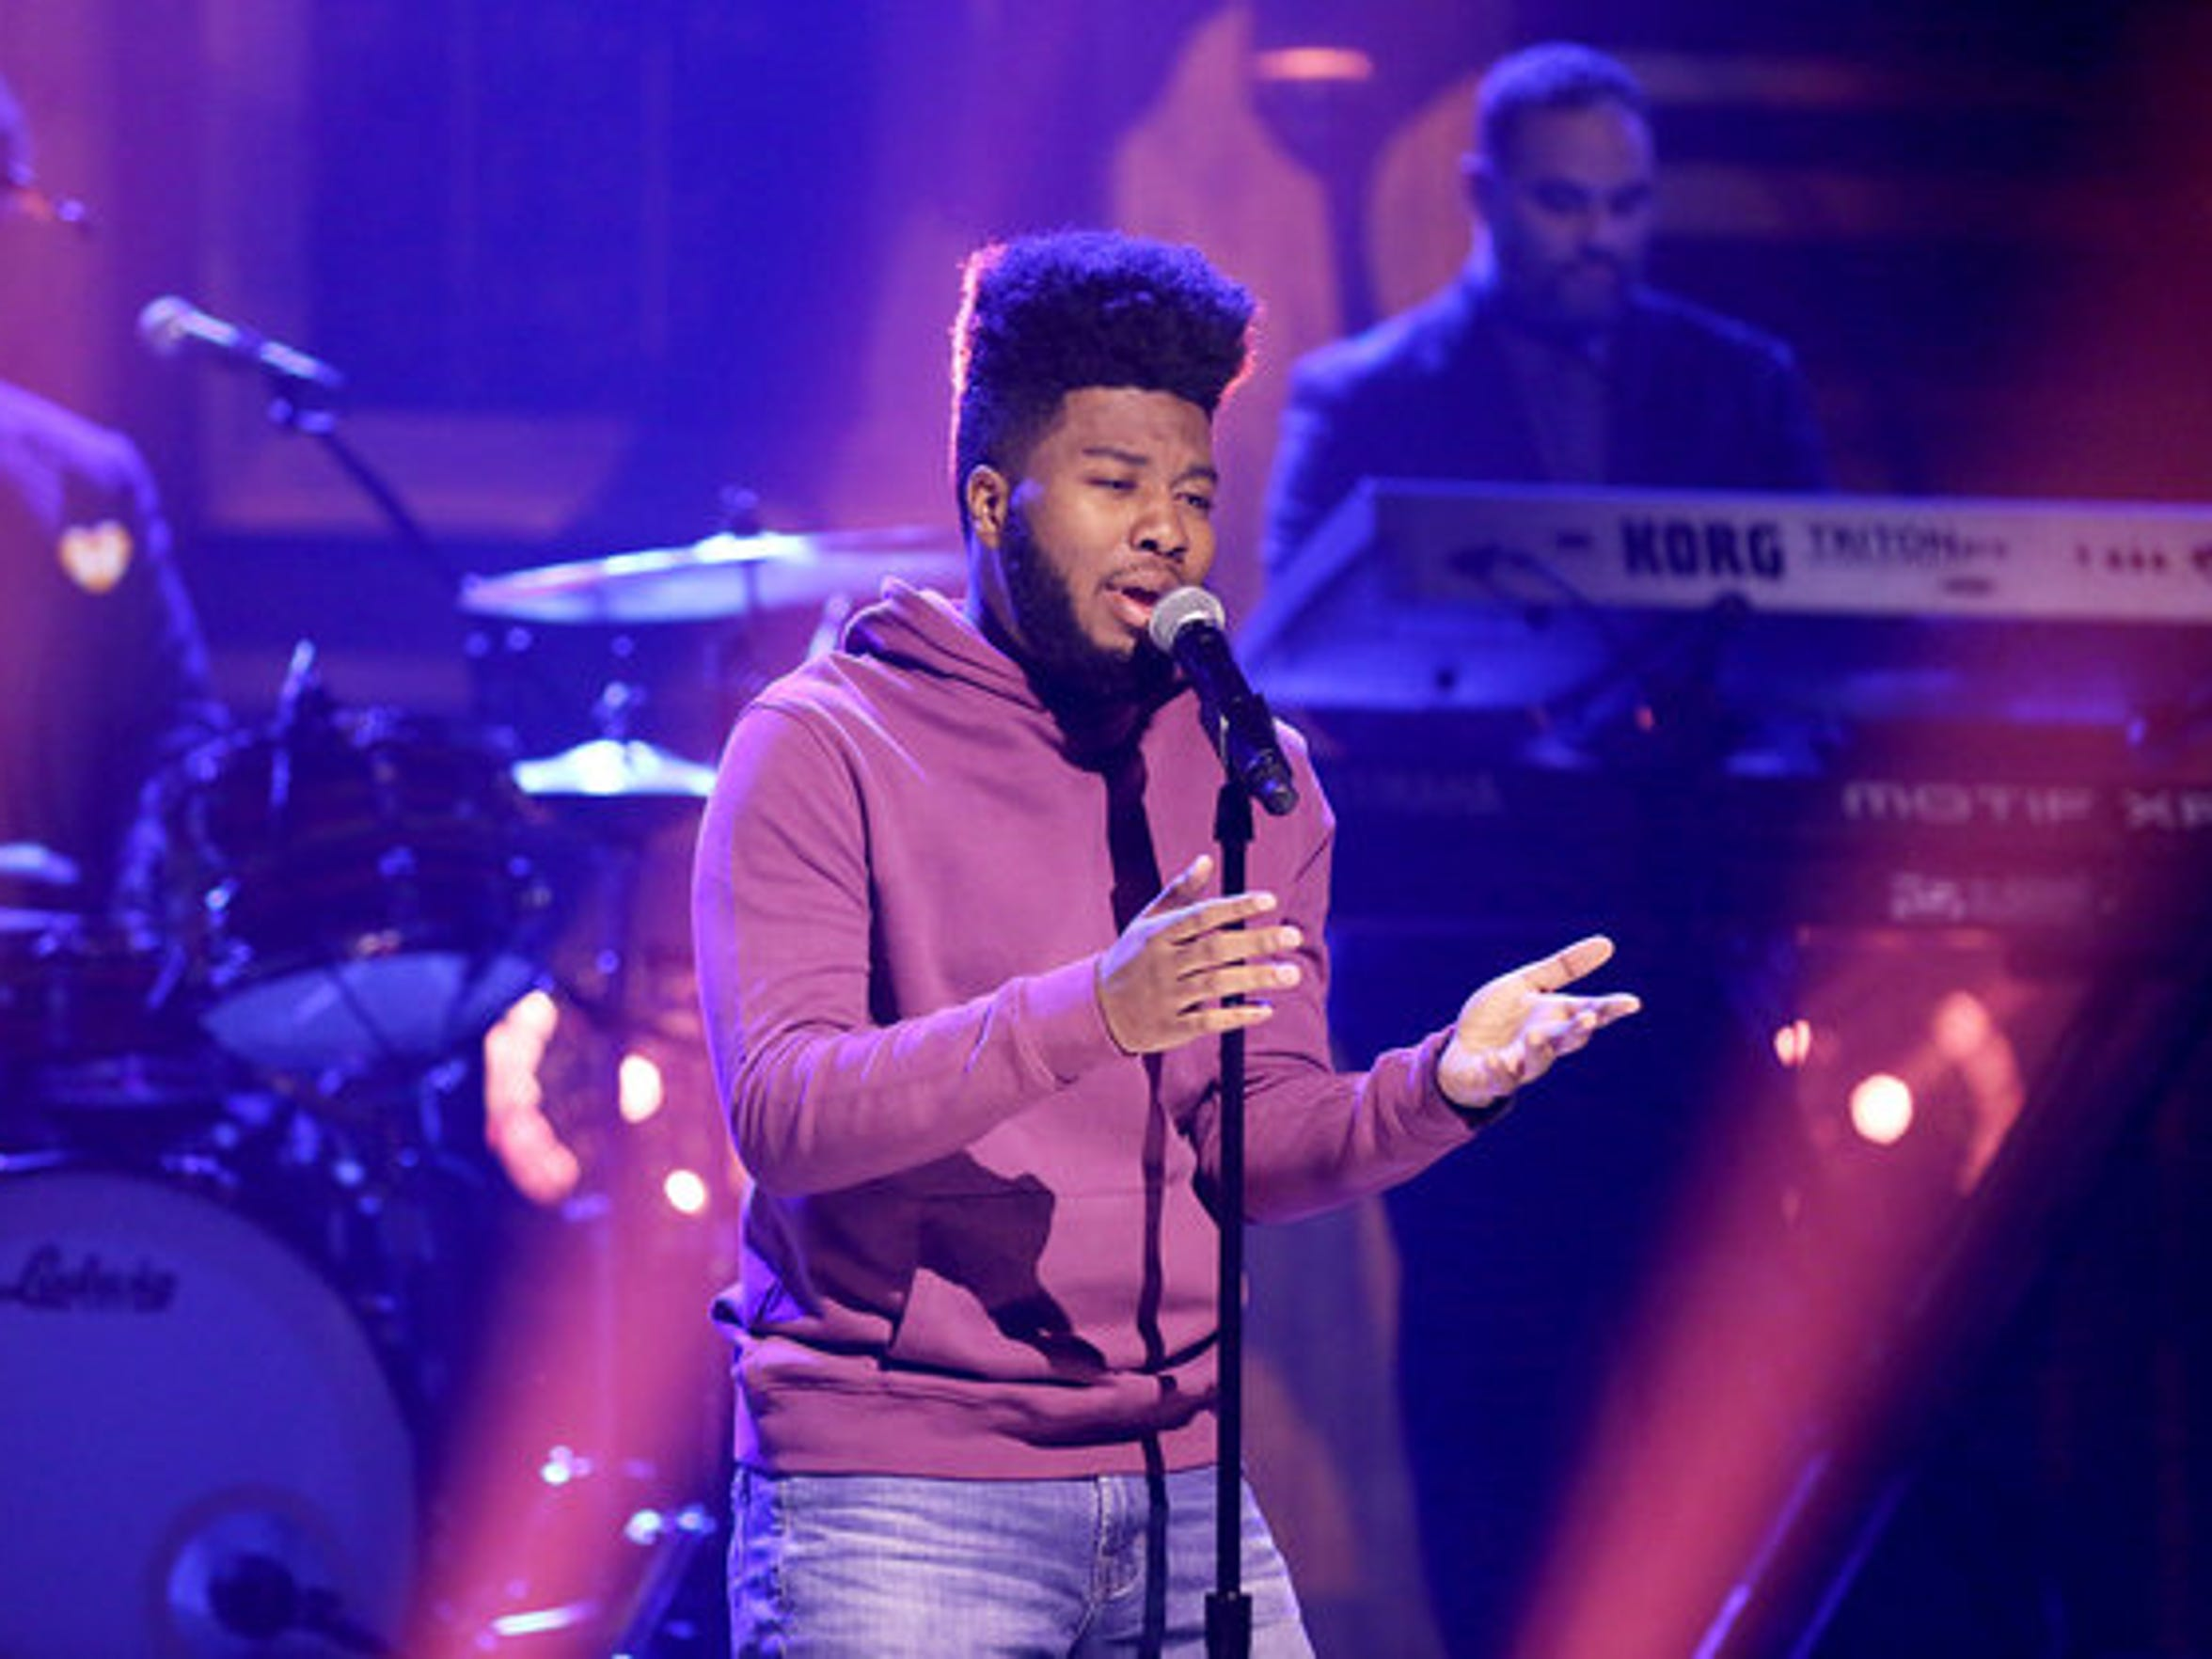 The history behind Khalid's 2017 rise to fame